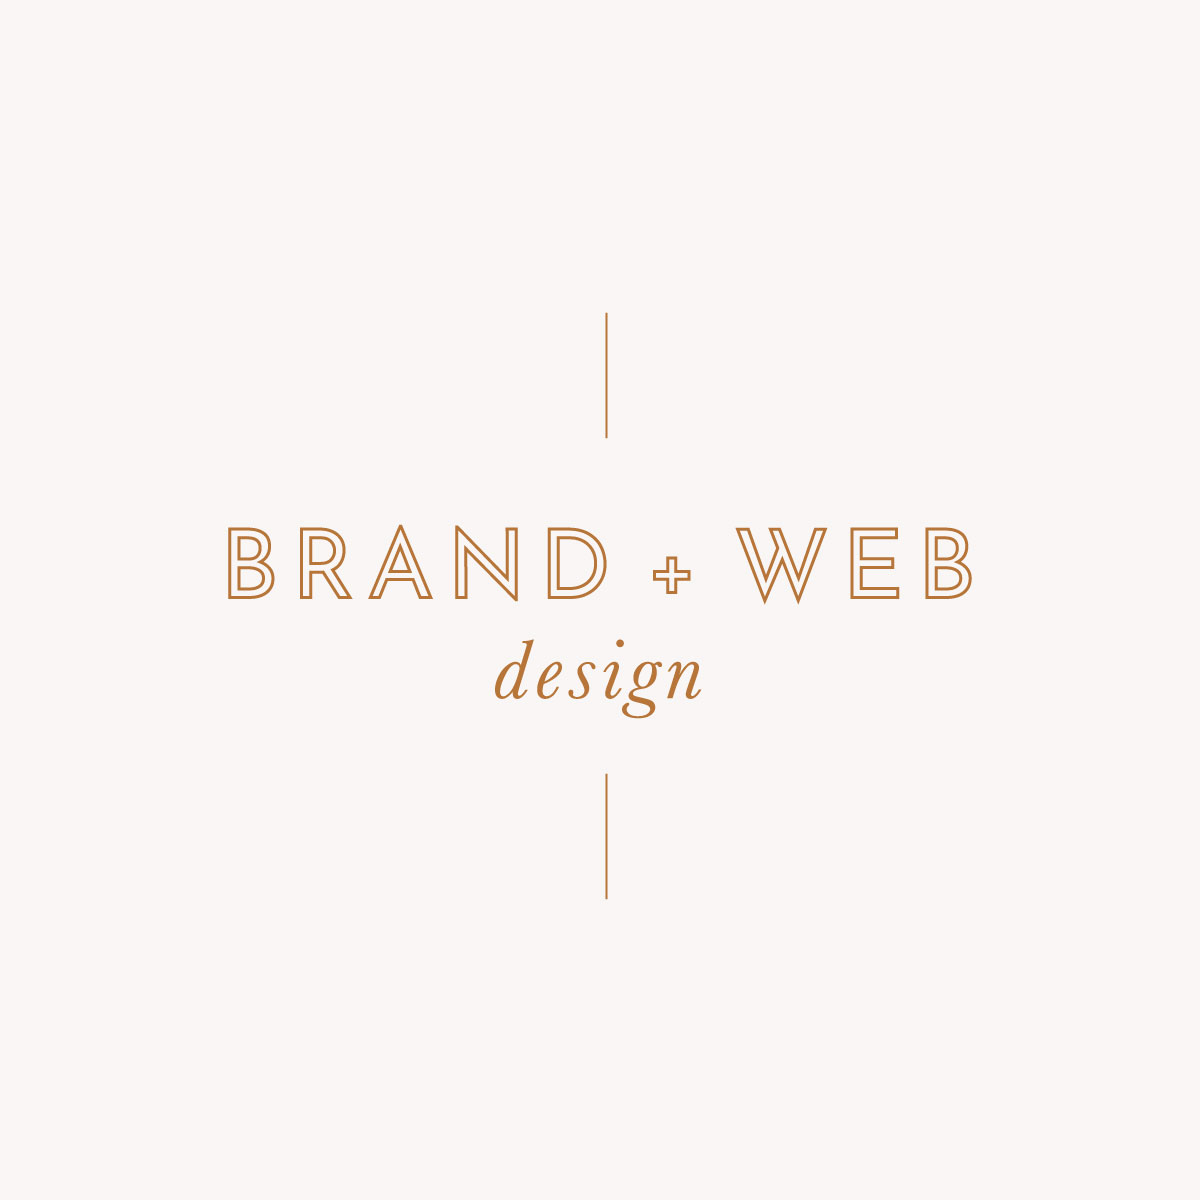 - A custom website is the foundation for your brand's presence. This package features a polished design + website that will establish your brand online. The Squarespace platform ensures that it's mobile-responsive, user-friendly, and easy for you to manage on the back end.• brand discovery process• brand strategy + mood board• primary logo design• secondary logo design• color palette• typography treatments• brand style guide• 2-3 collateral+ customized squarespace website design+ social media profile designs